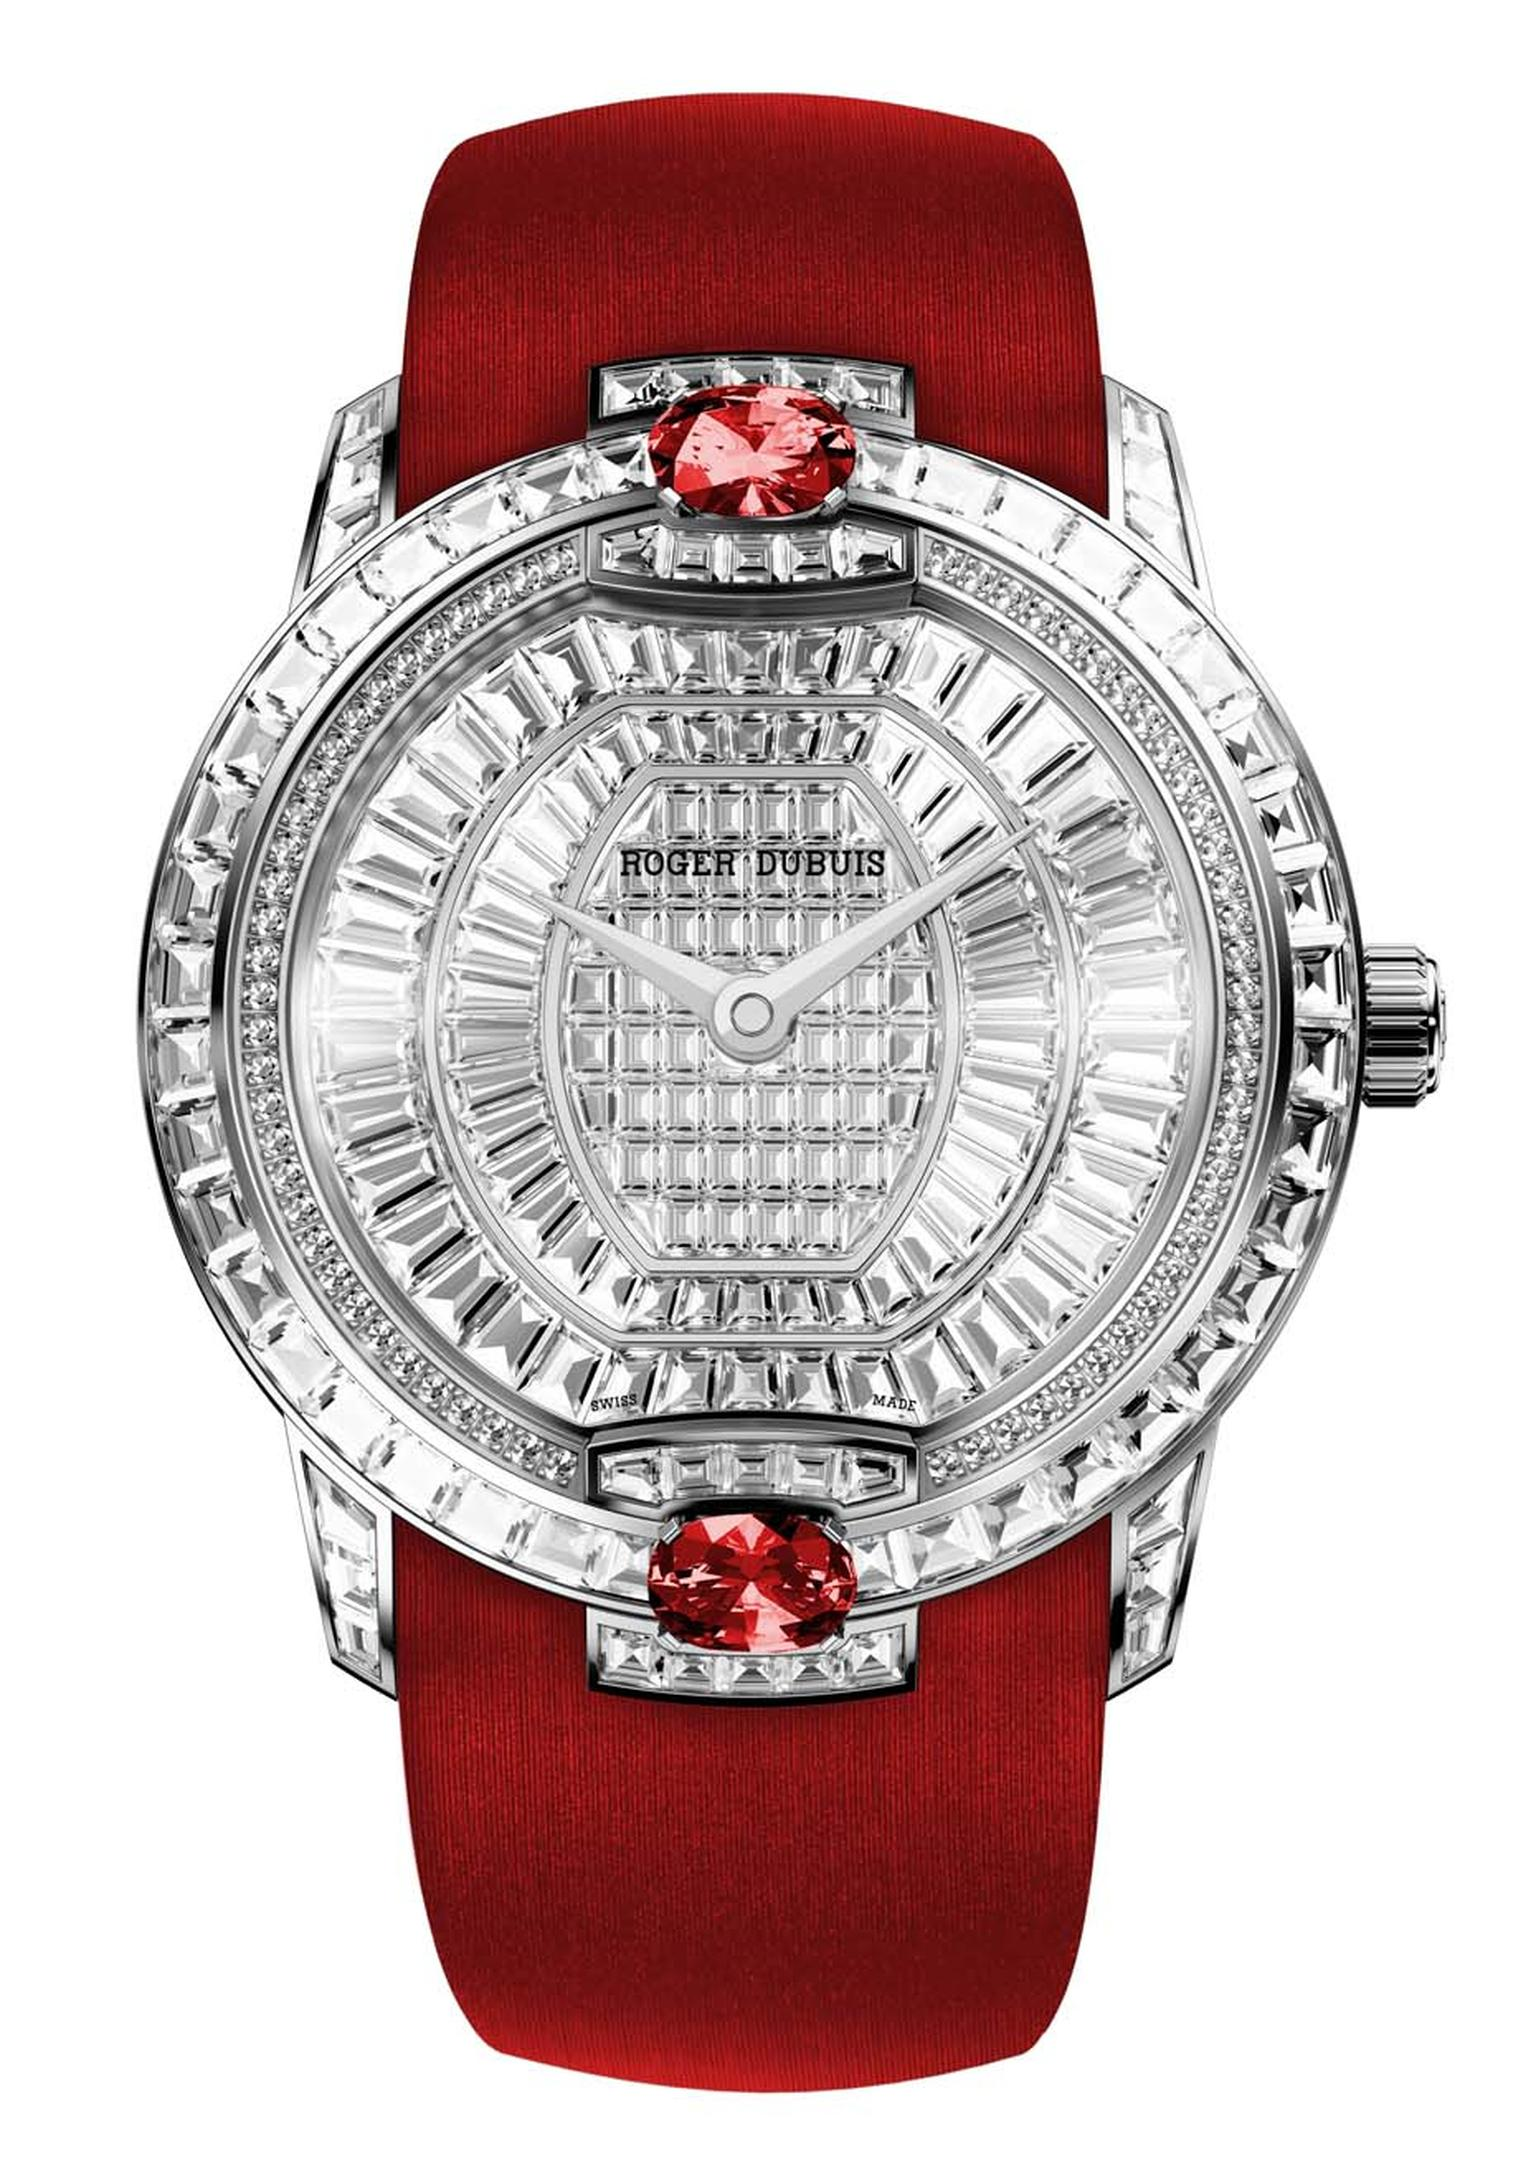 Roger Dubuis' Velvet watch features two striking rubies and 304 diamonds in one of three different diamond settings